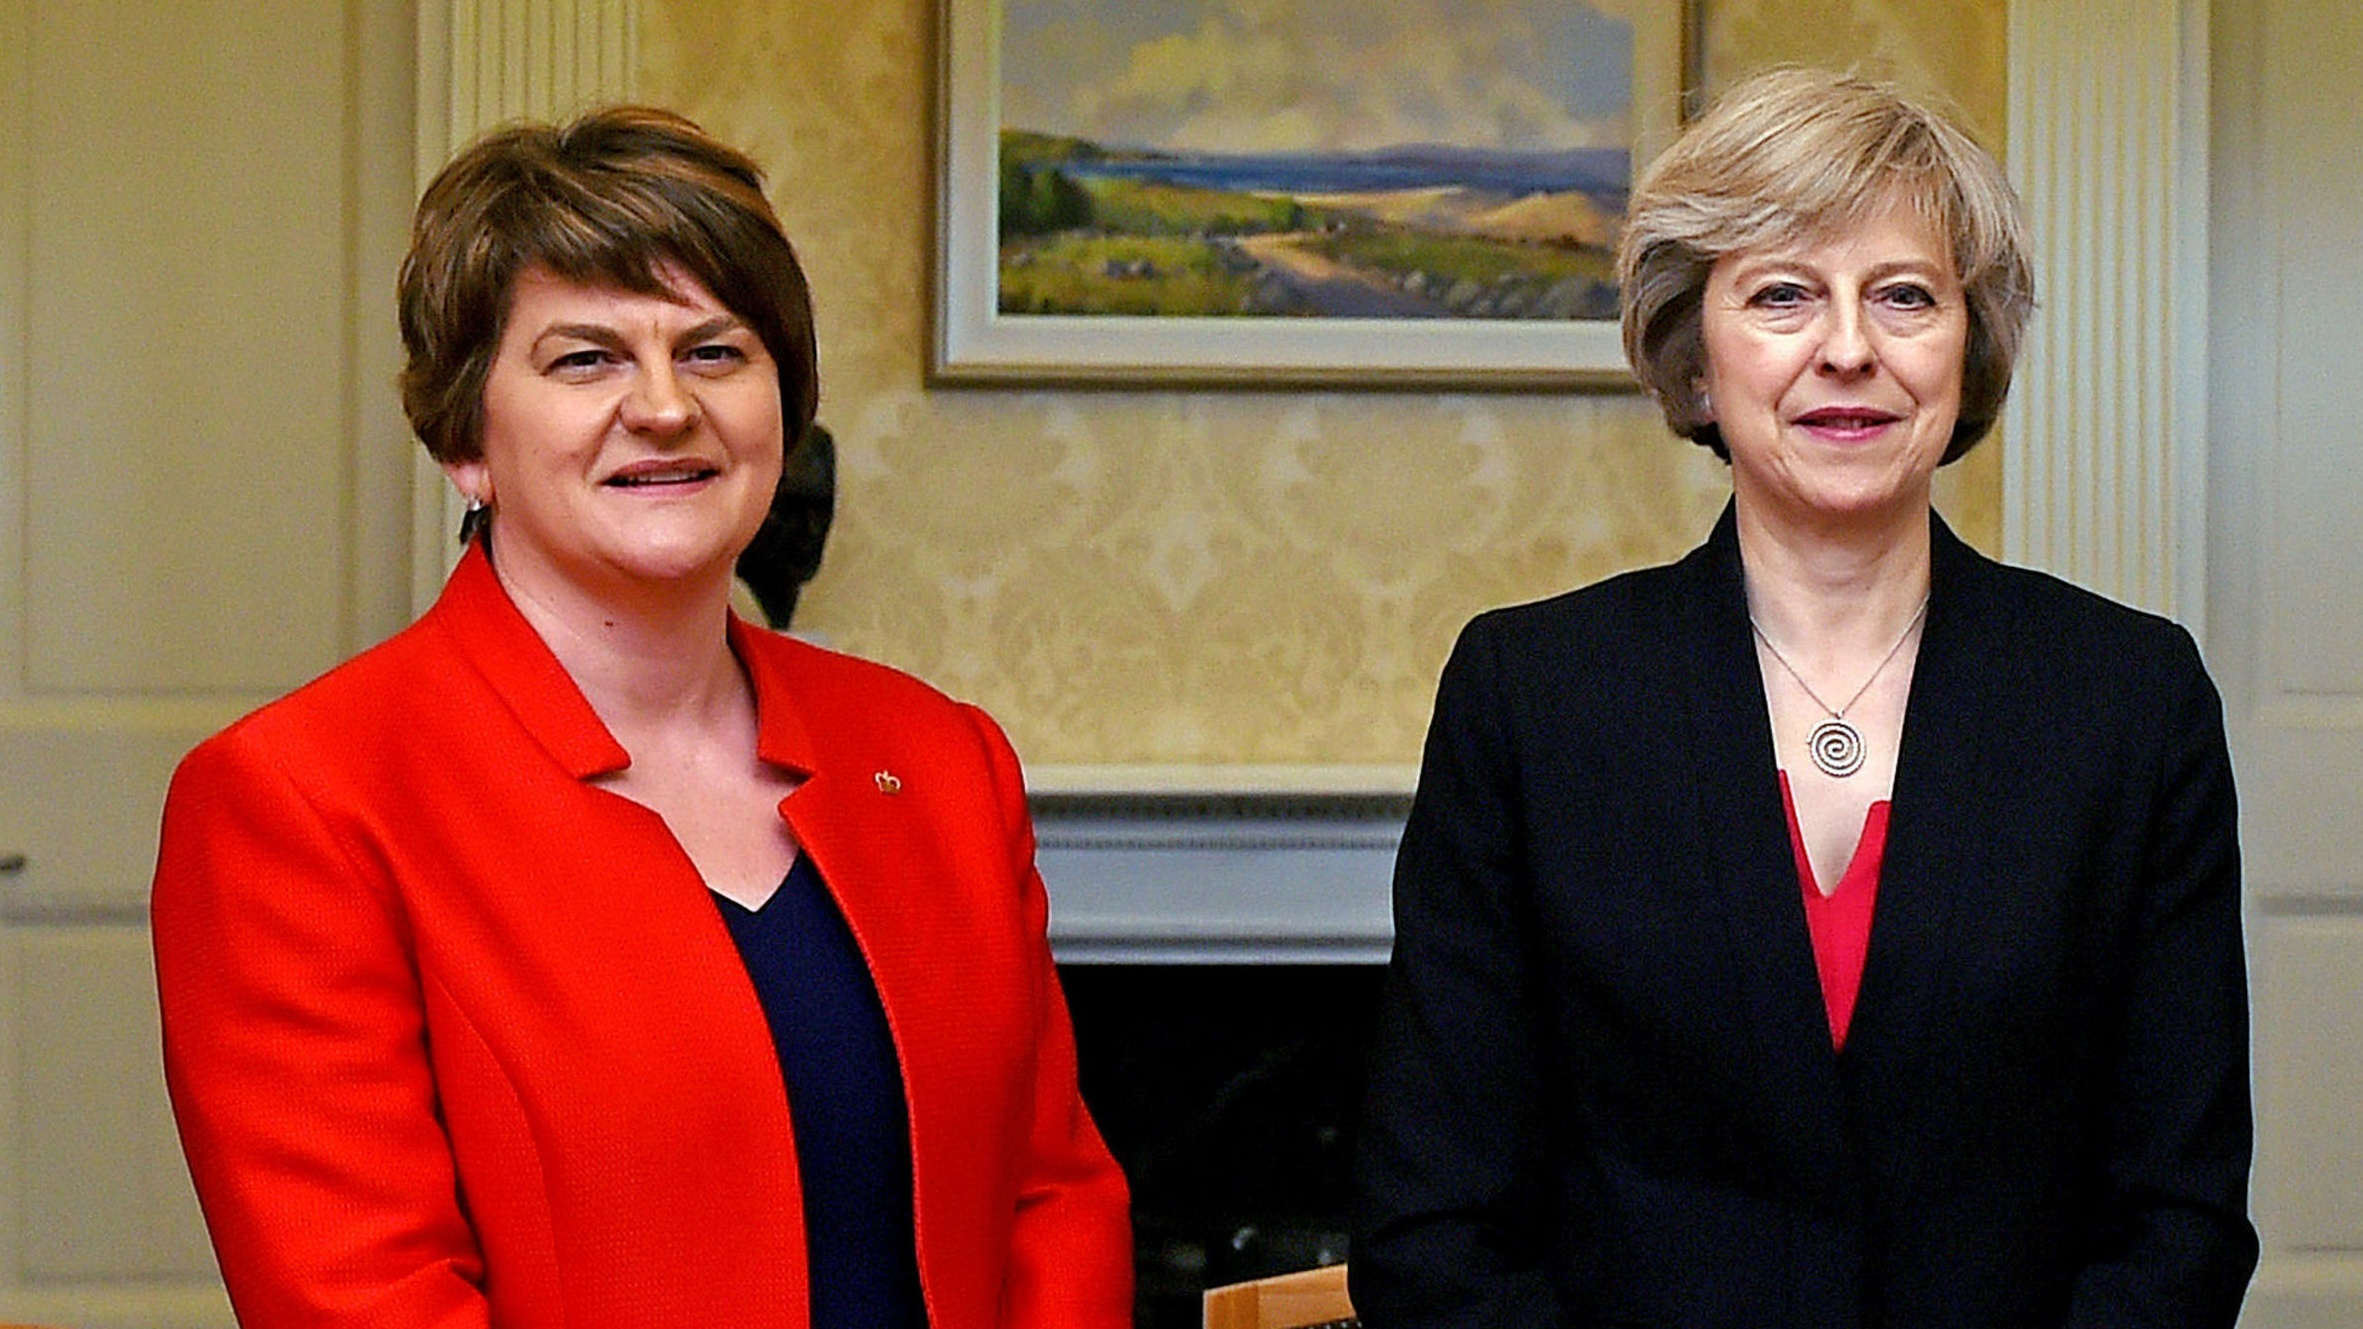 May to talk with NI parties amid concerns over DUP deal